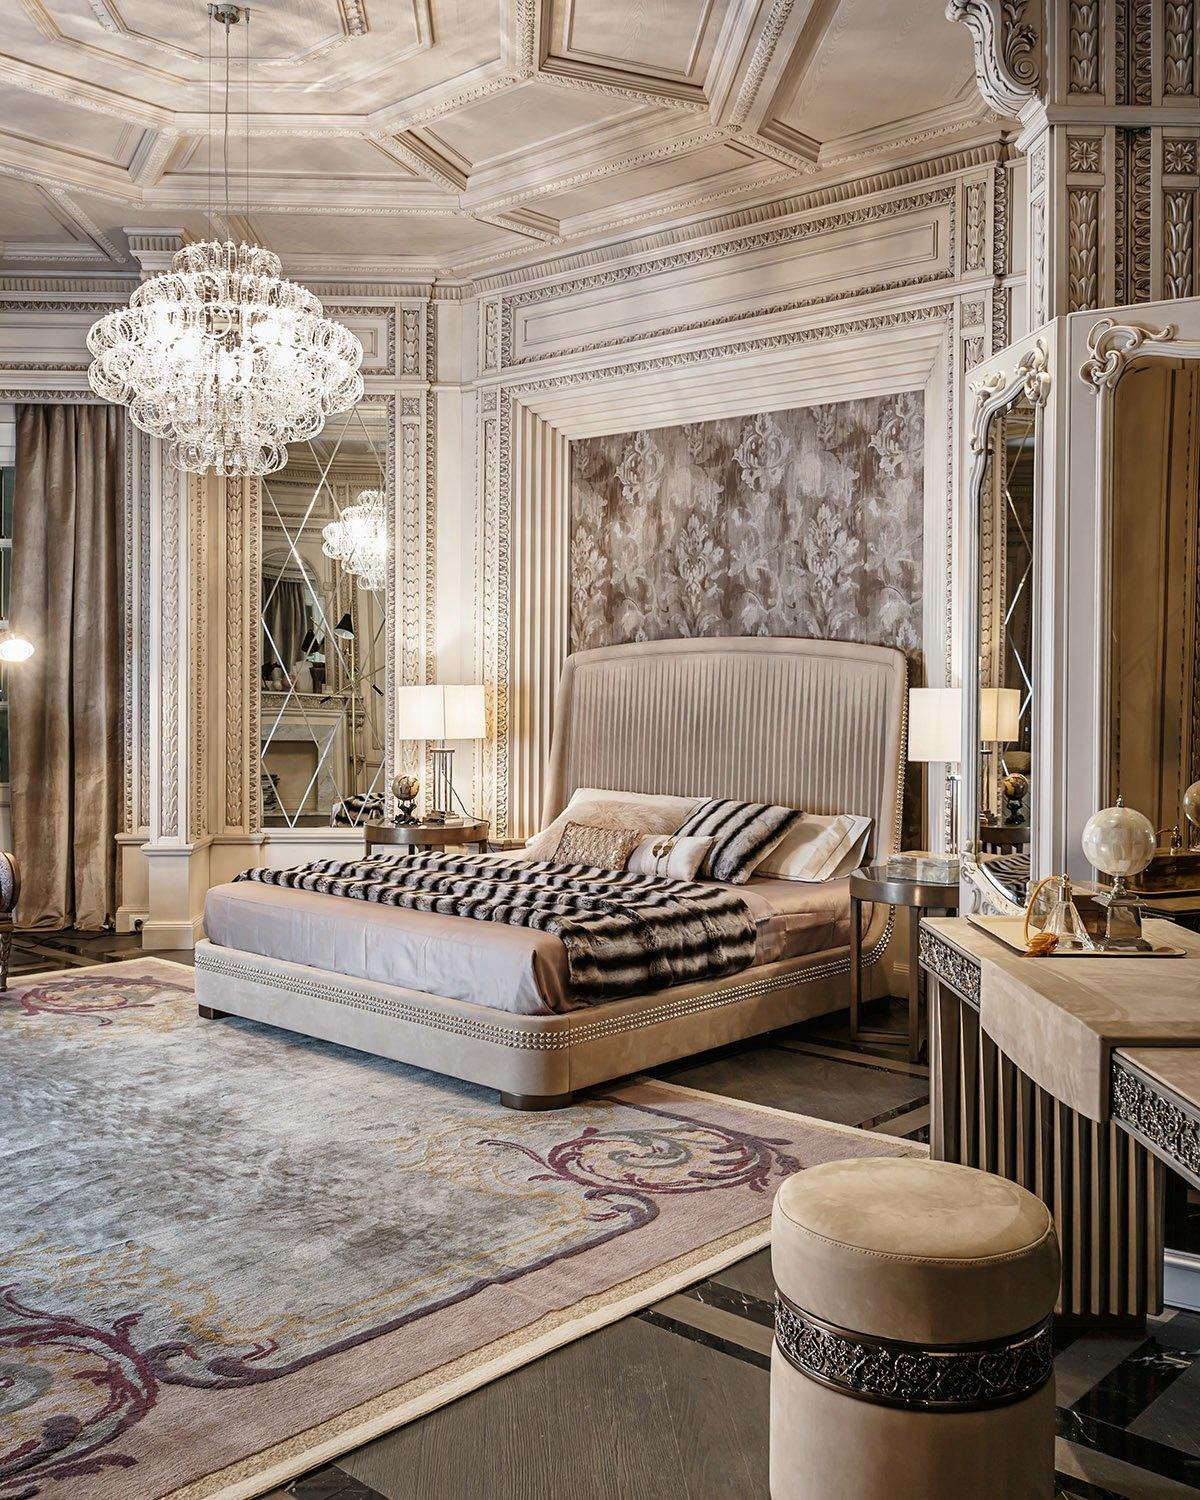 Art Nouveau Bedroom: Neoclassical And Art Deco Features In Two Luxurious Interiors